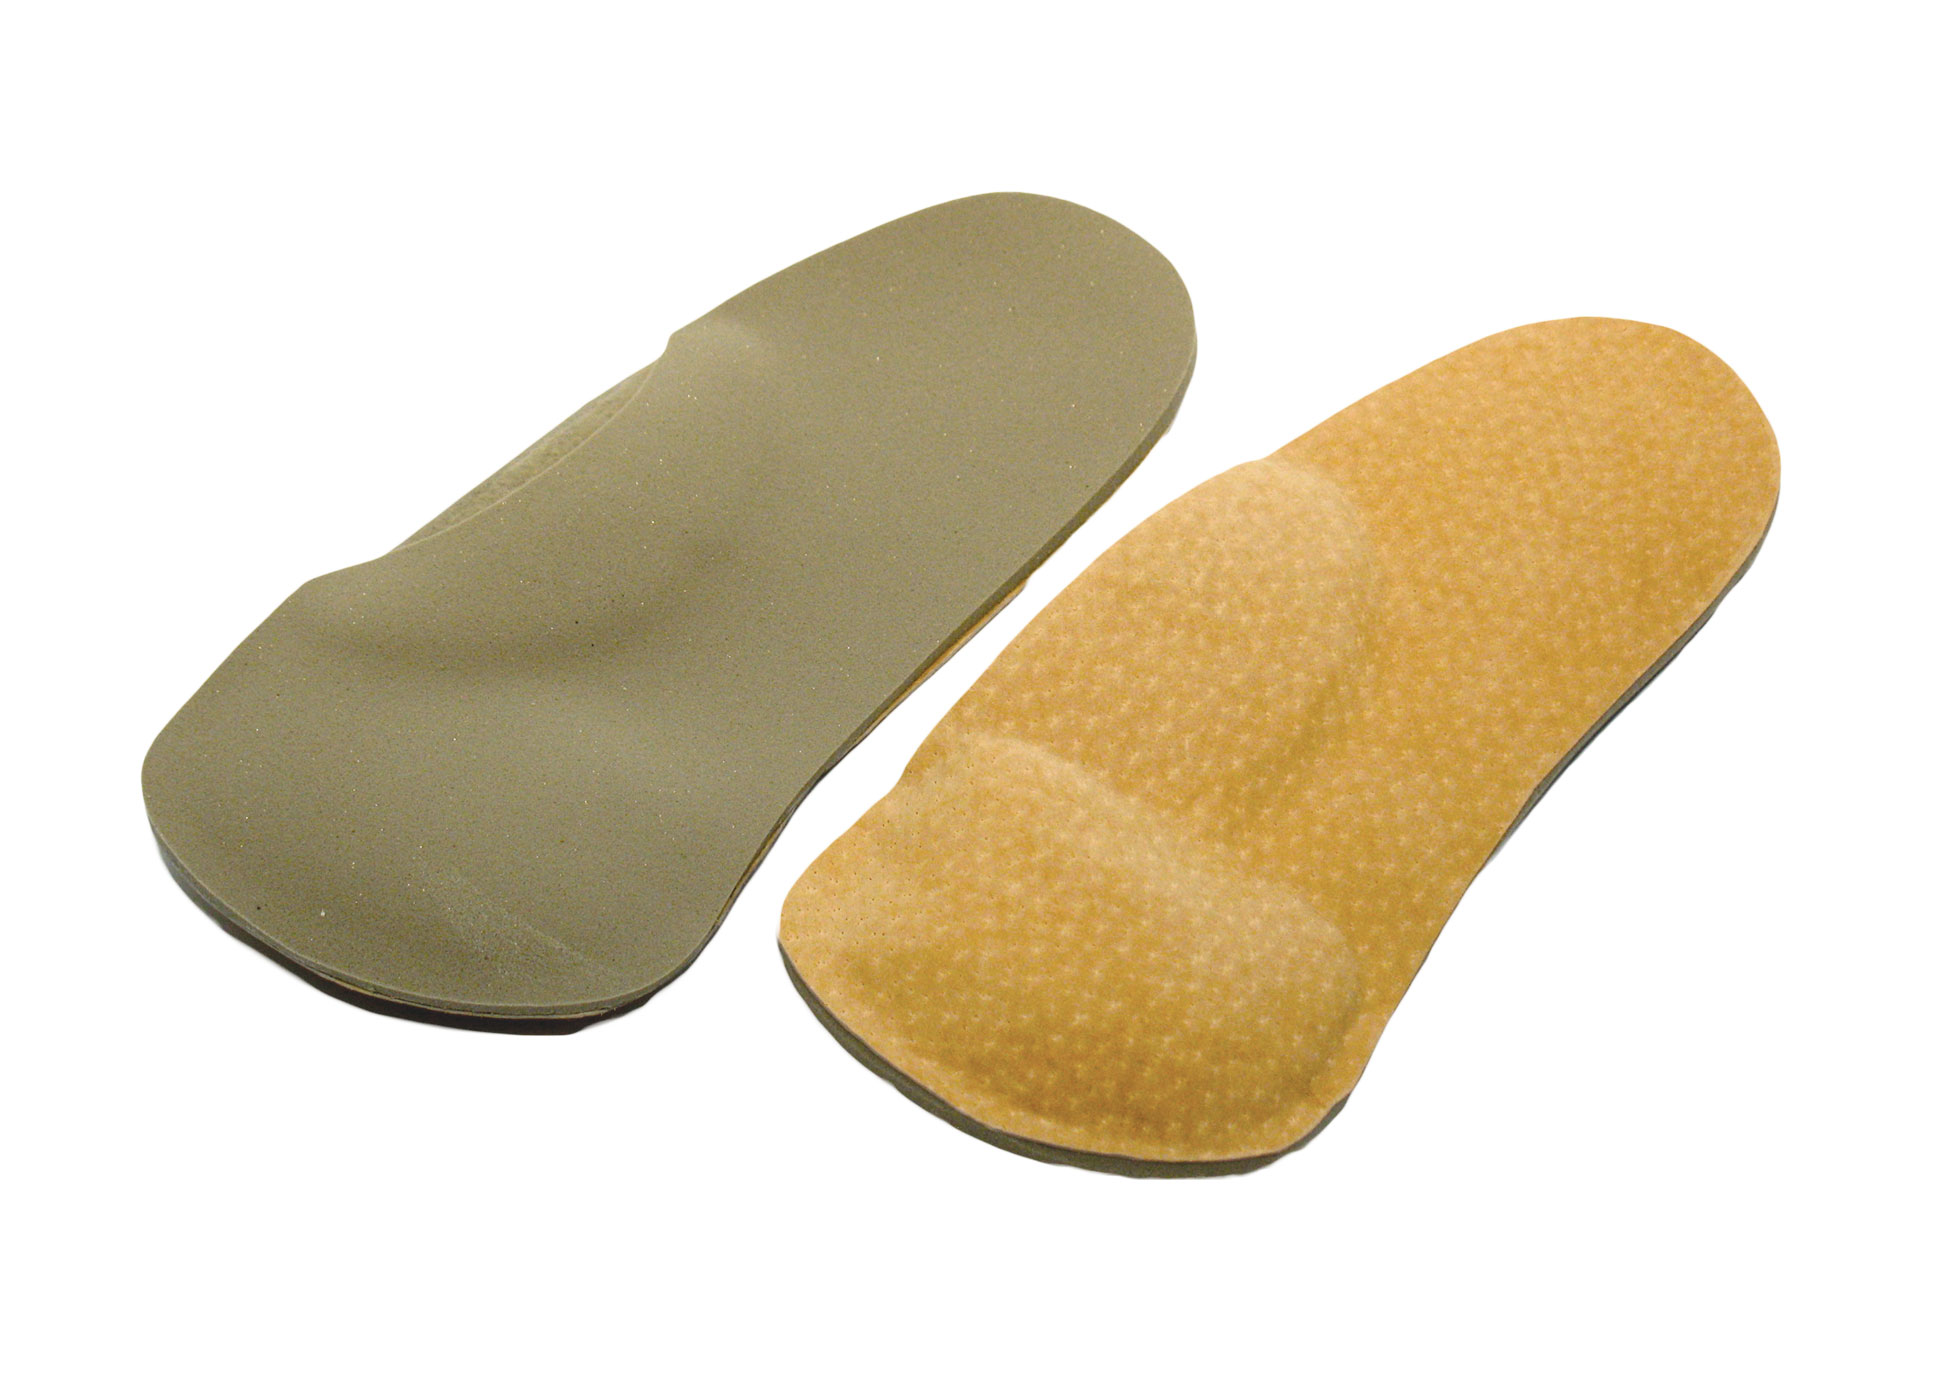 Haplabase Orthotic - Foot Supports - Model 405 - Per Pair - Met and Valgus Pads - Womens 3 - 5